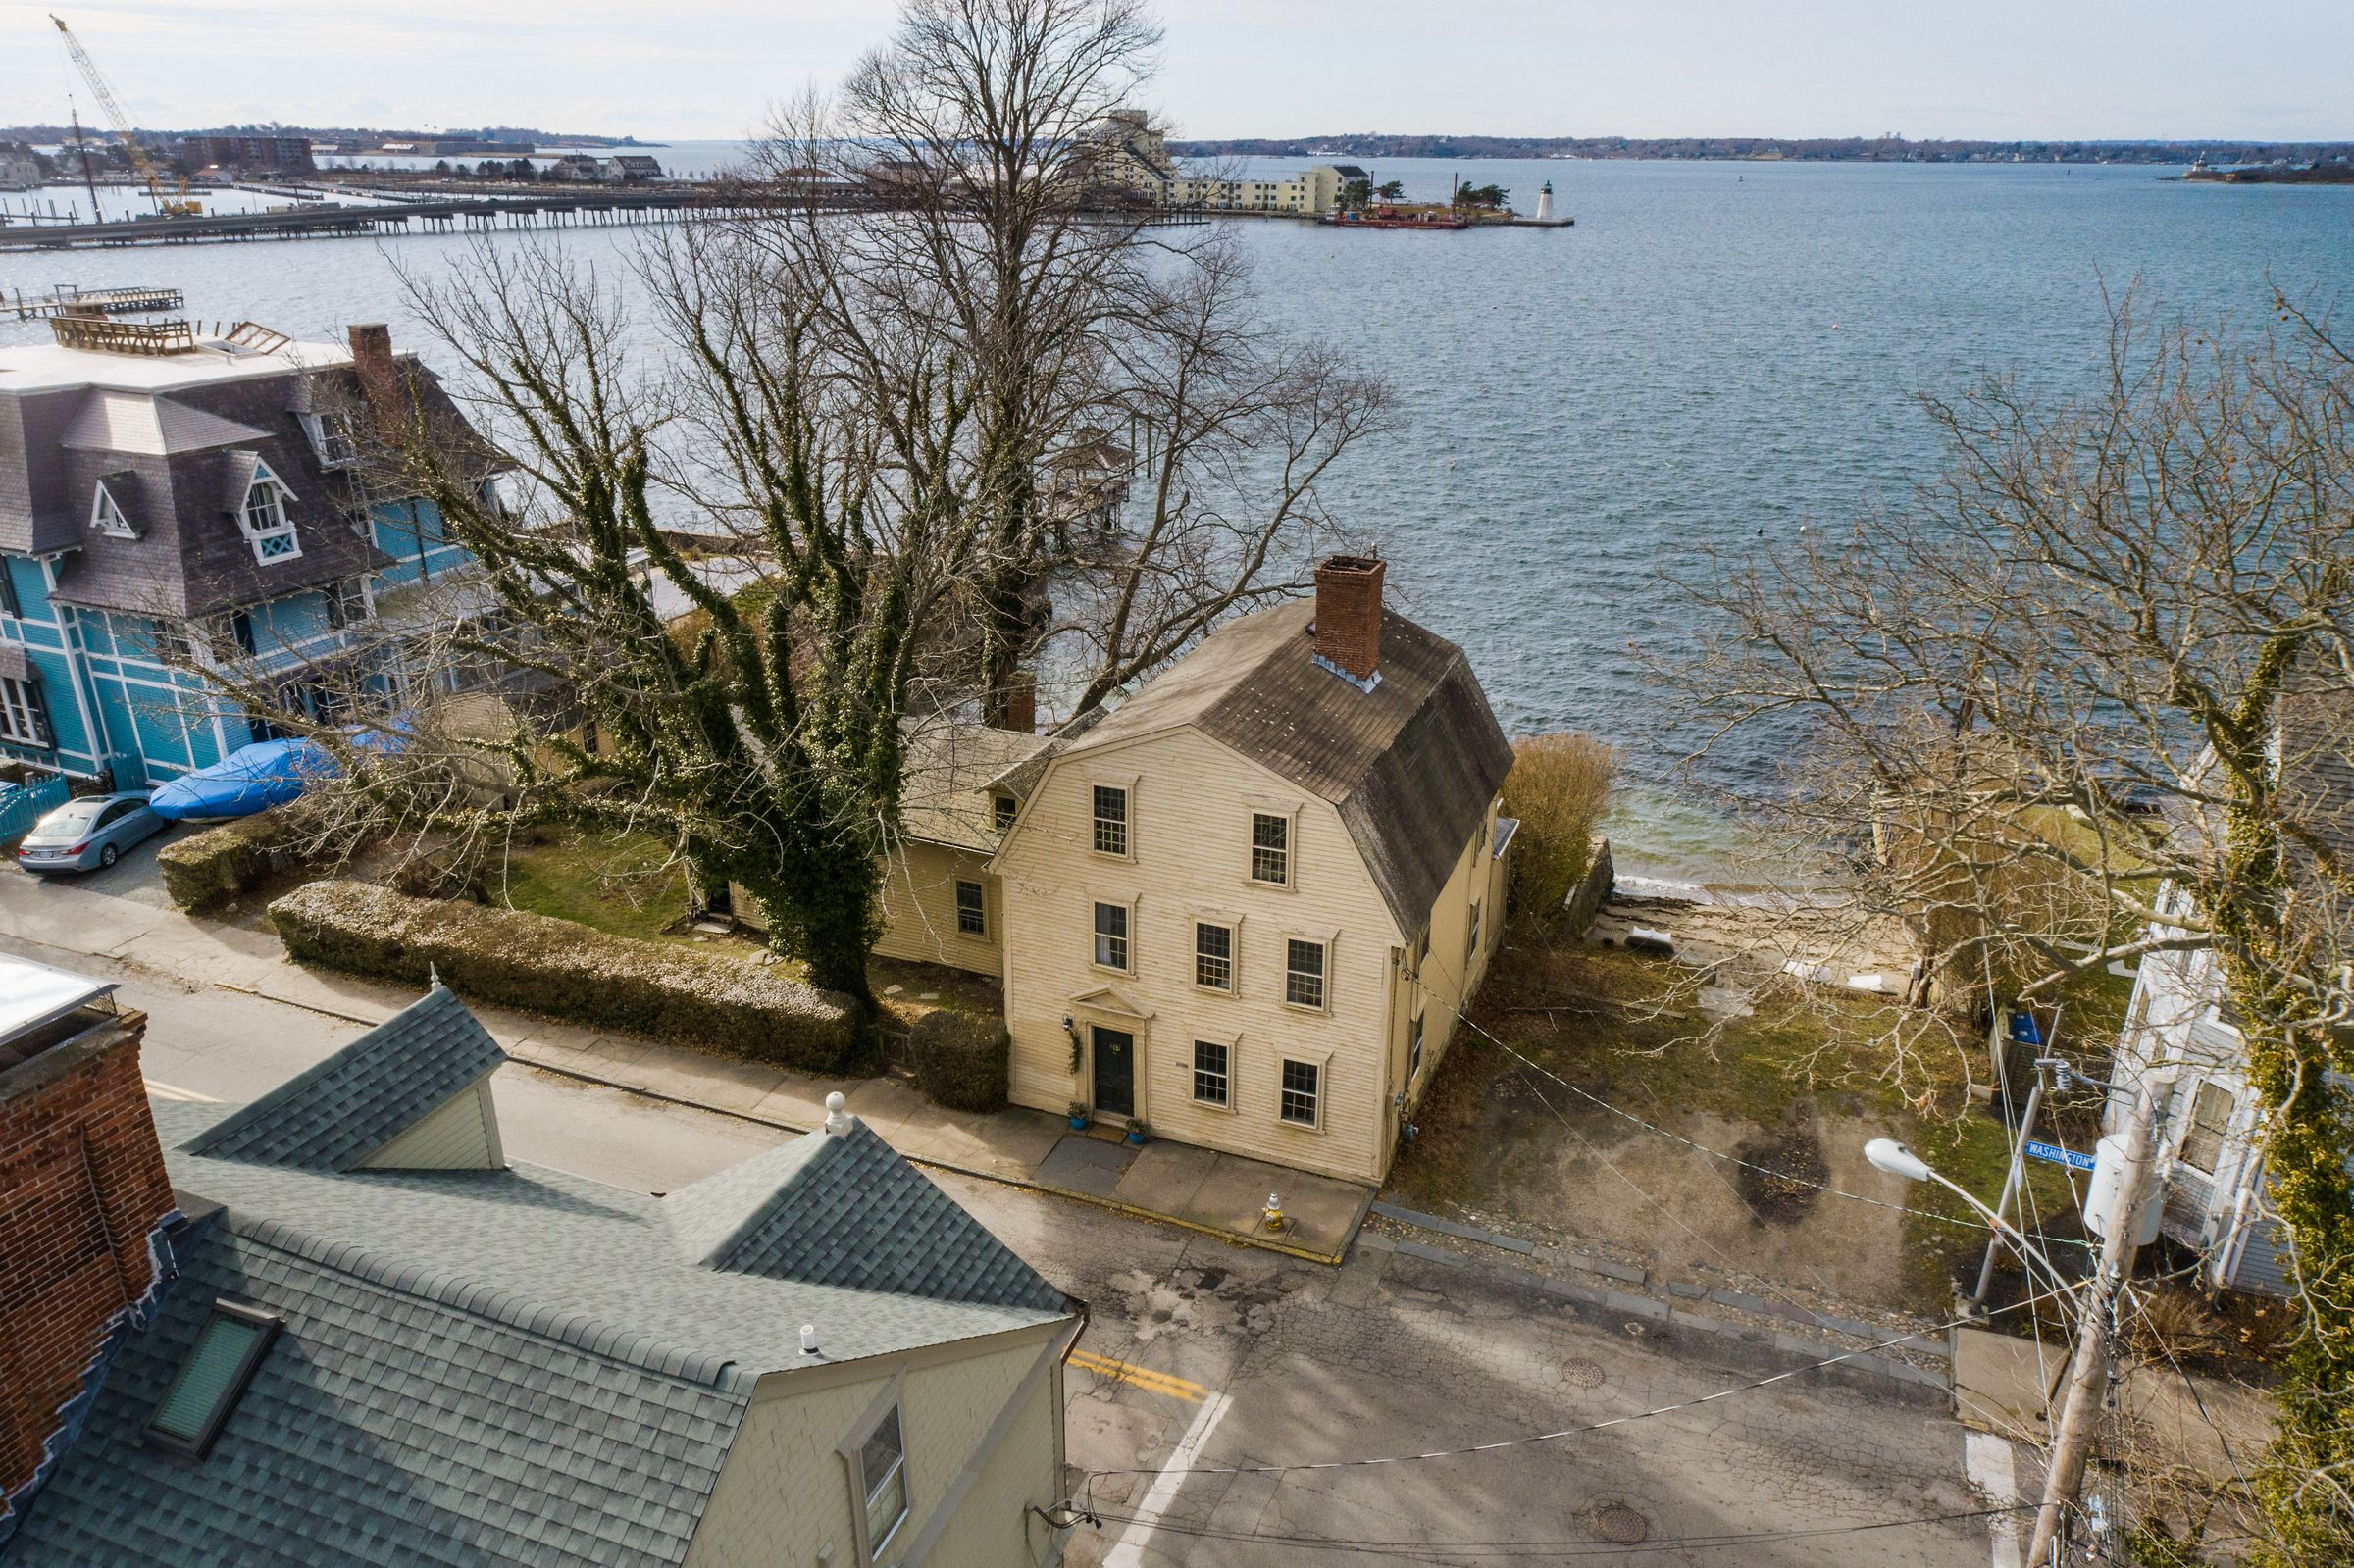 WATERFRONT HOME IN NEWPORT'S POINT NEIGHBORHOOD SELLS FOR $3.45M BY GEORGE TOLLEFSON AND JULIE WARBURG OF LILA DELMAN REAL ESTATE